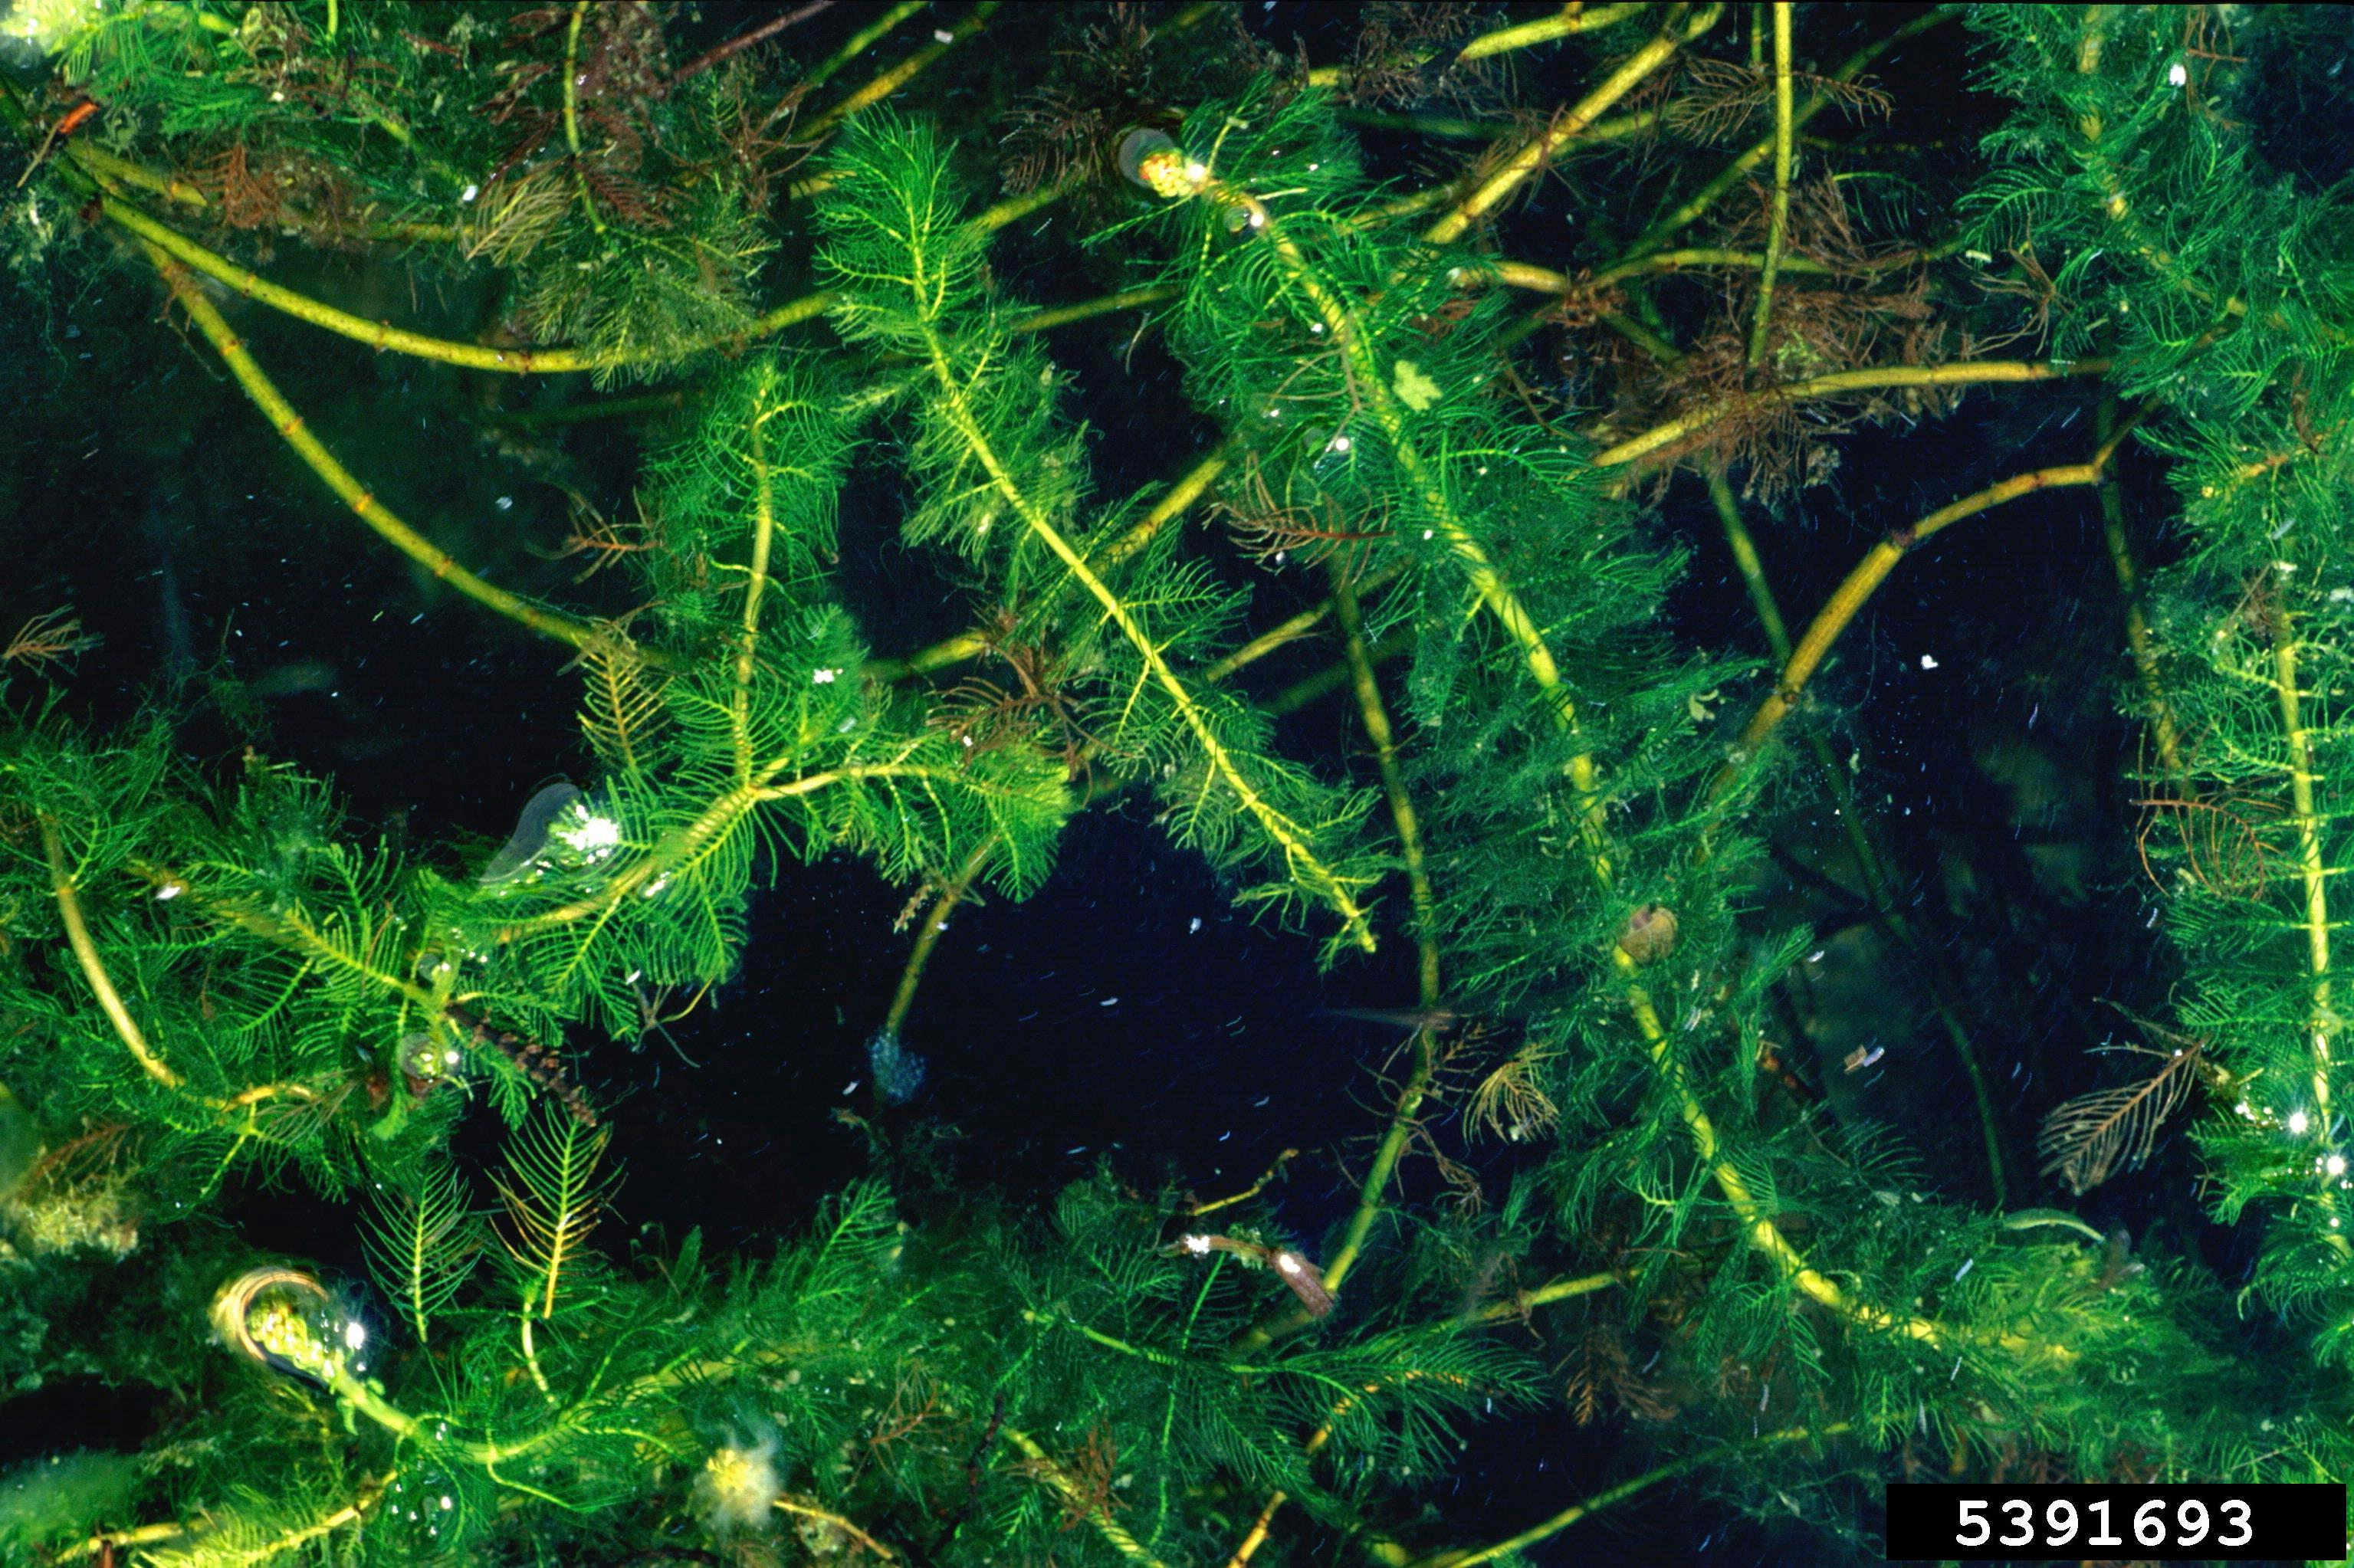 Eurasian Water Milfoil (Barry Rice, Sarrecenia.com, Bugwood.org)